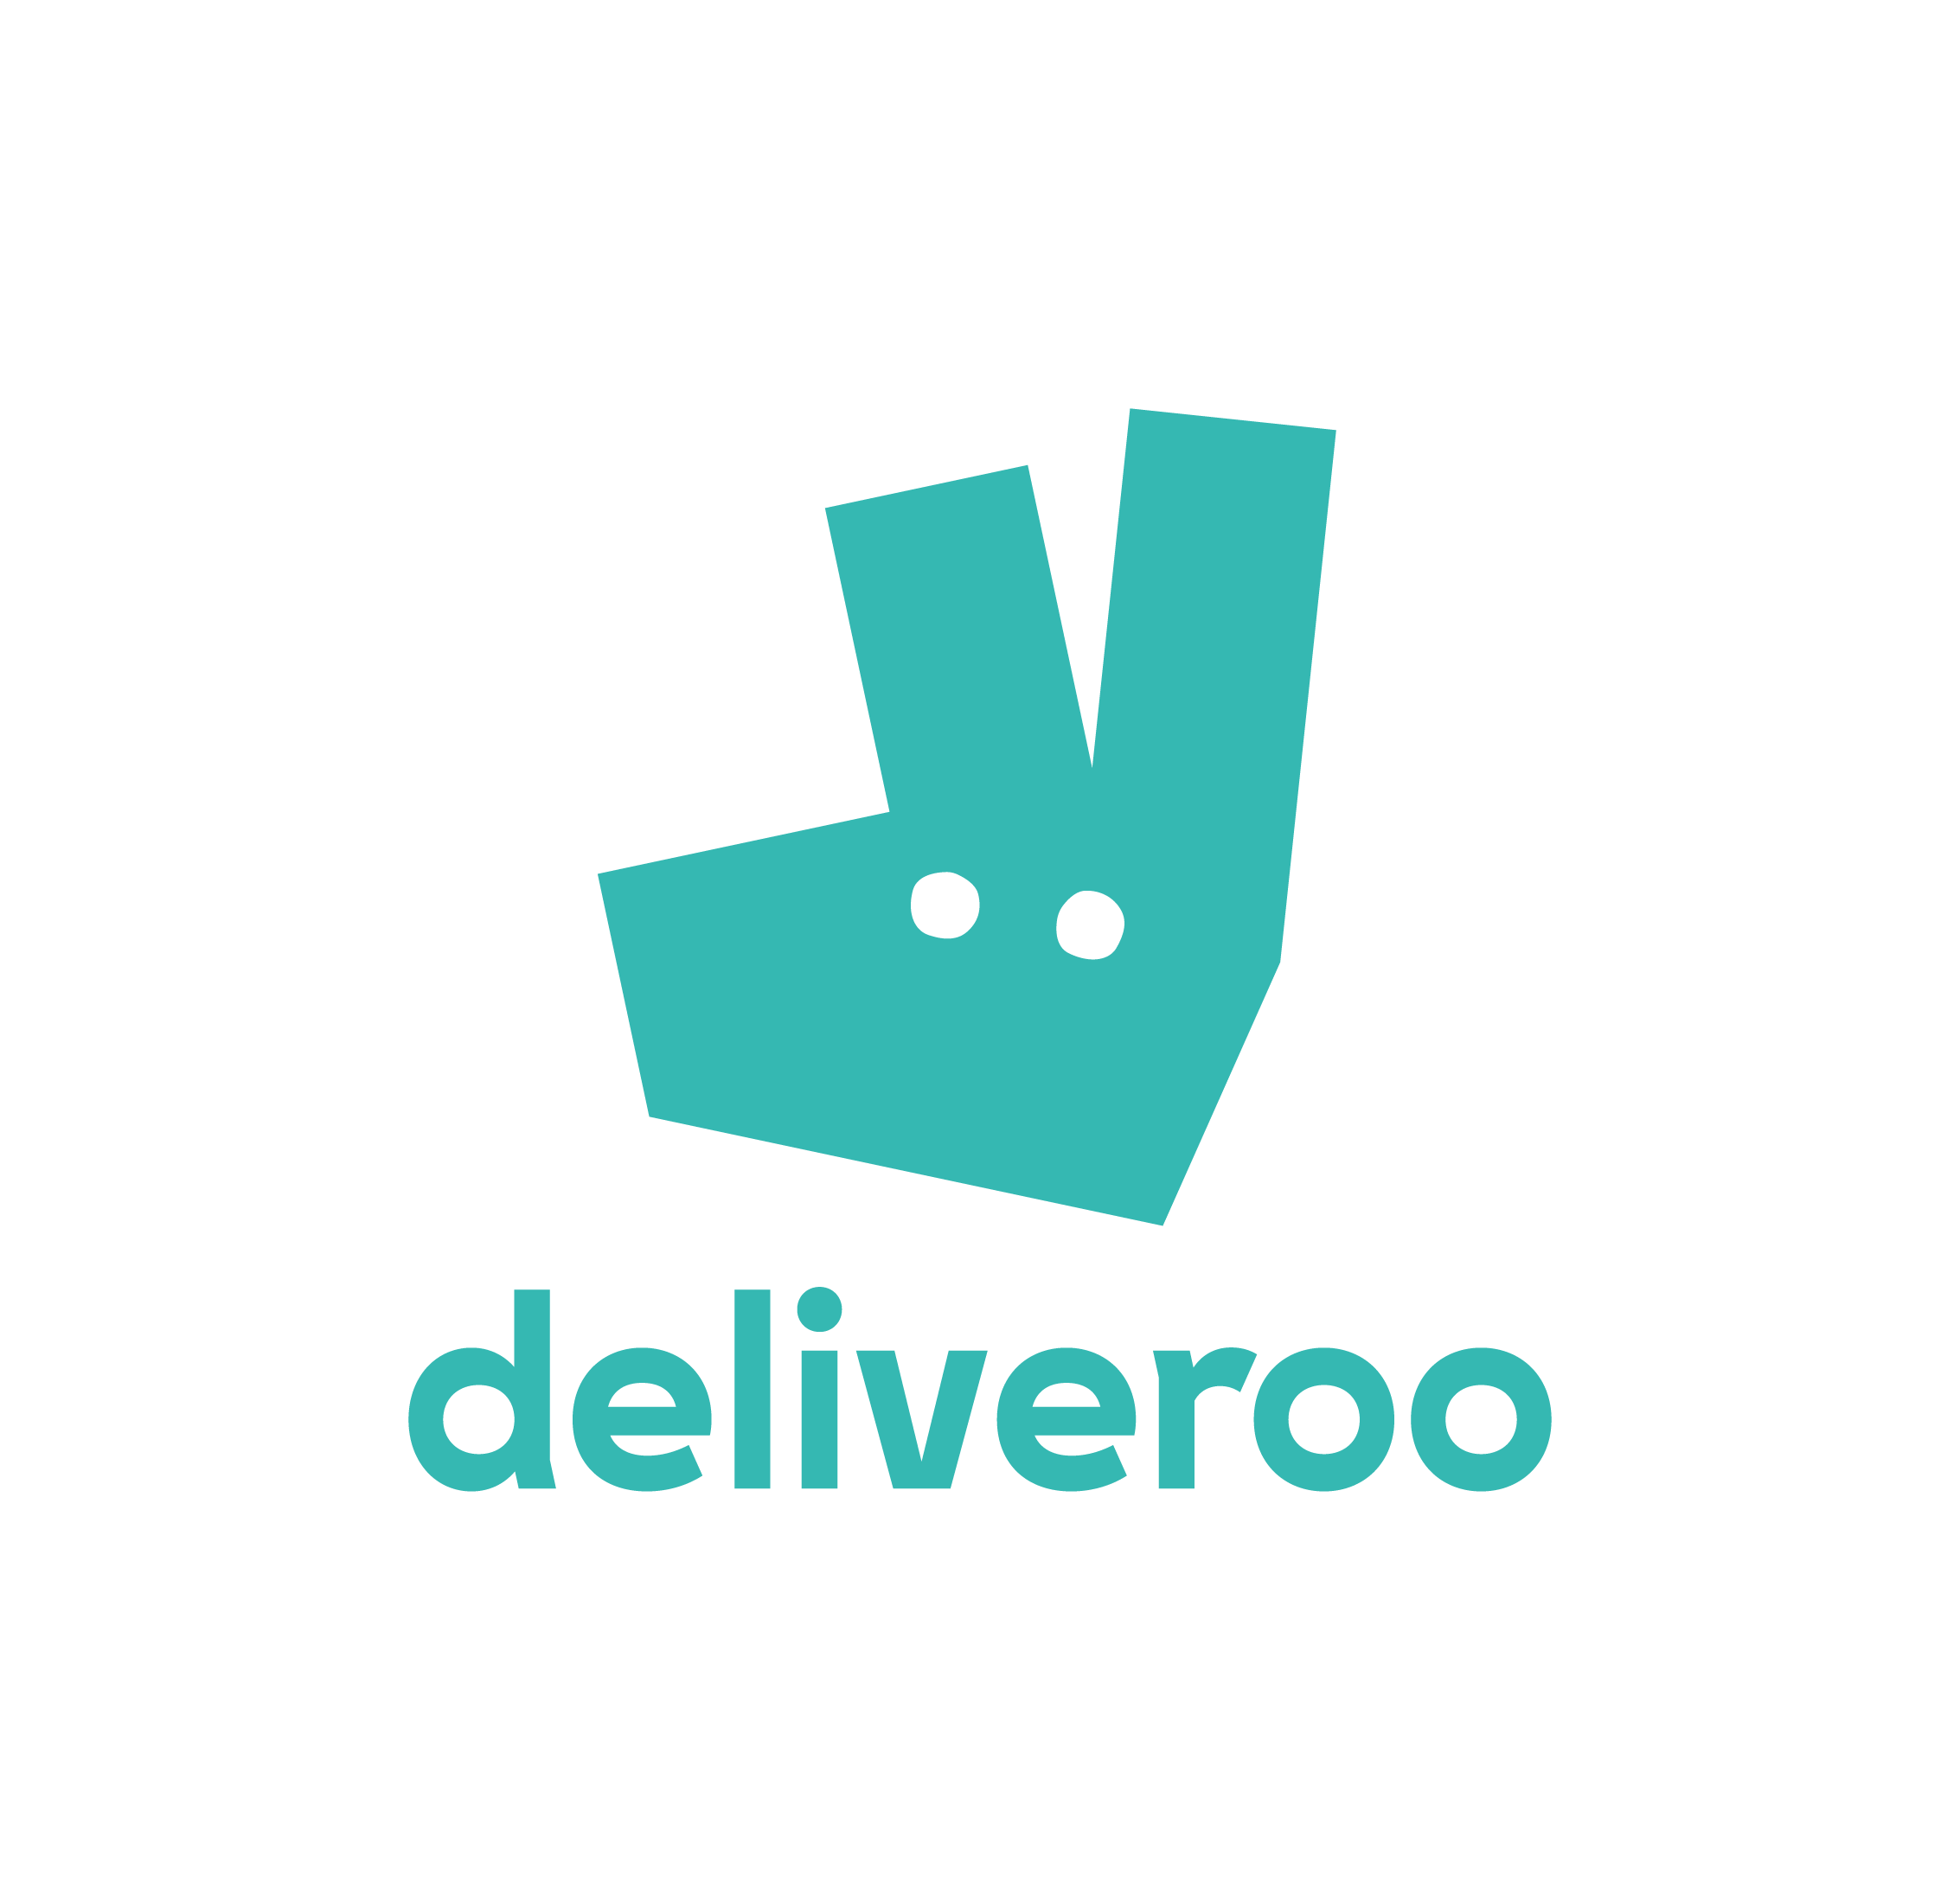 PREFERRED VERSION Deliveroo-Logo_Full_CMYK_Teal-2